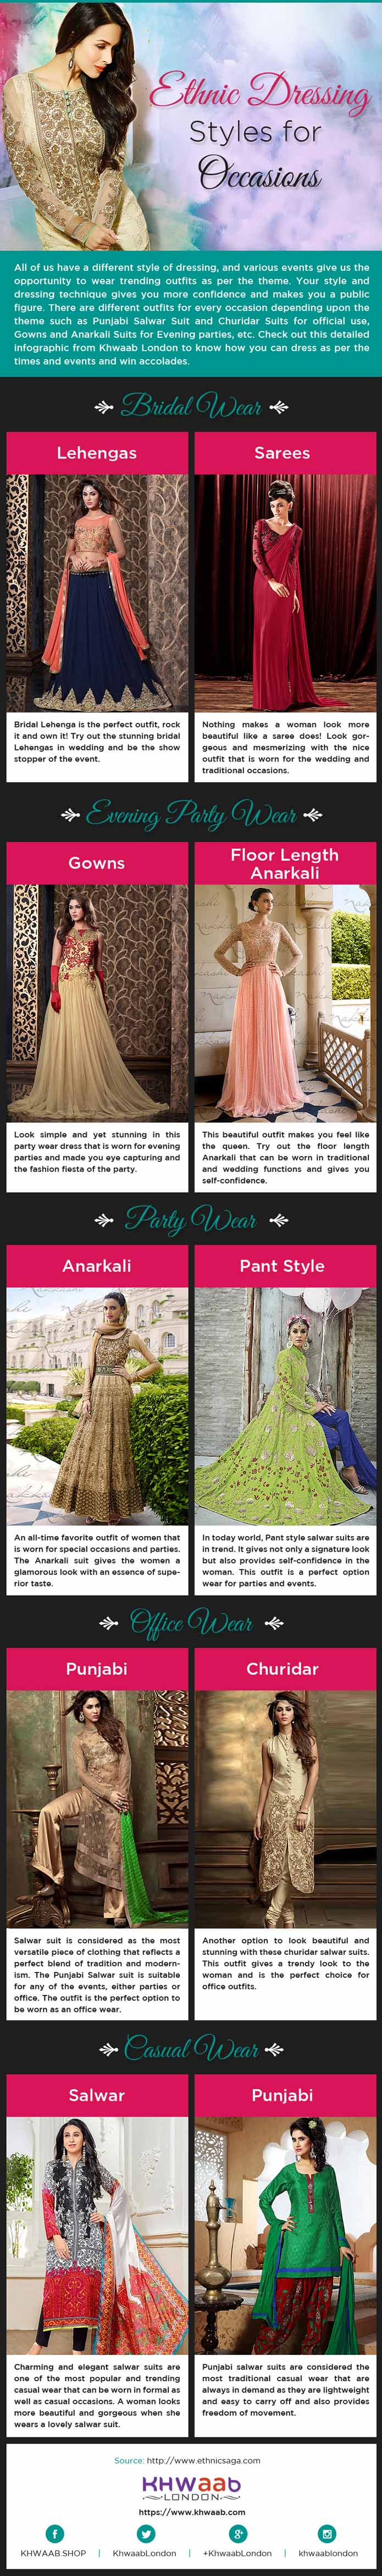 Ethnic Dressing Styles for Different Occasions [Infographic]